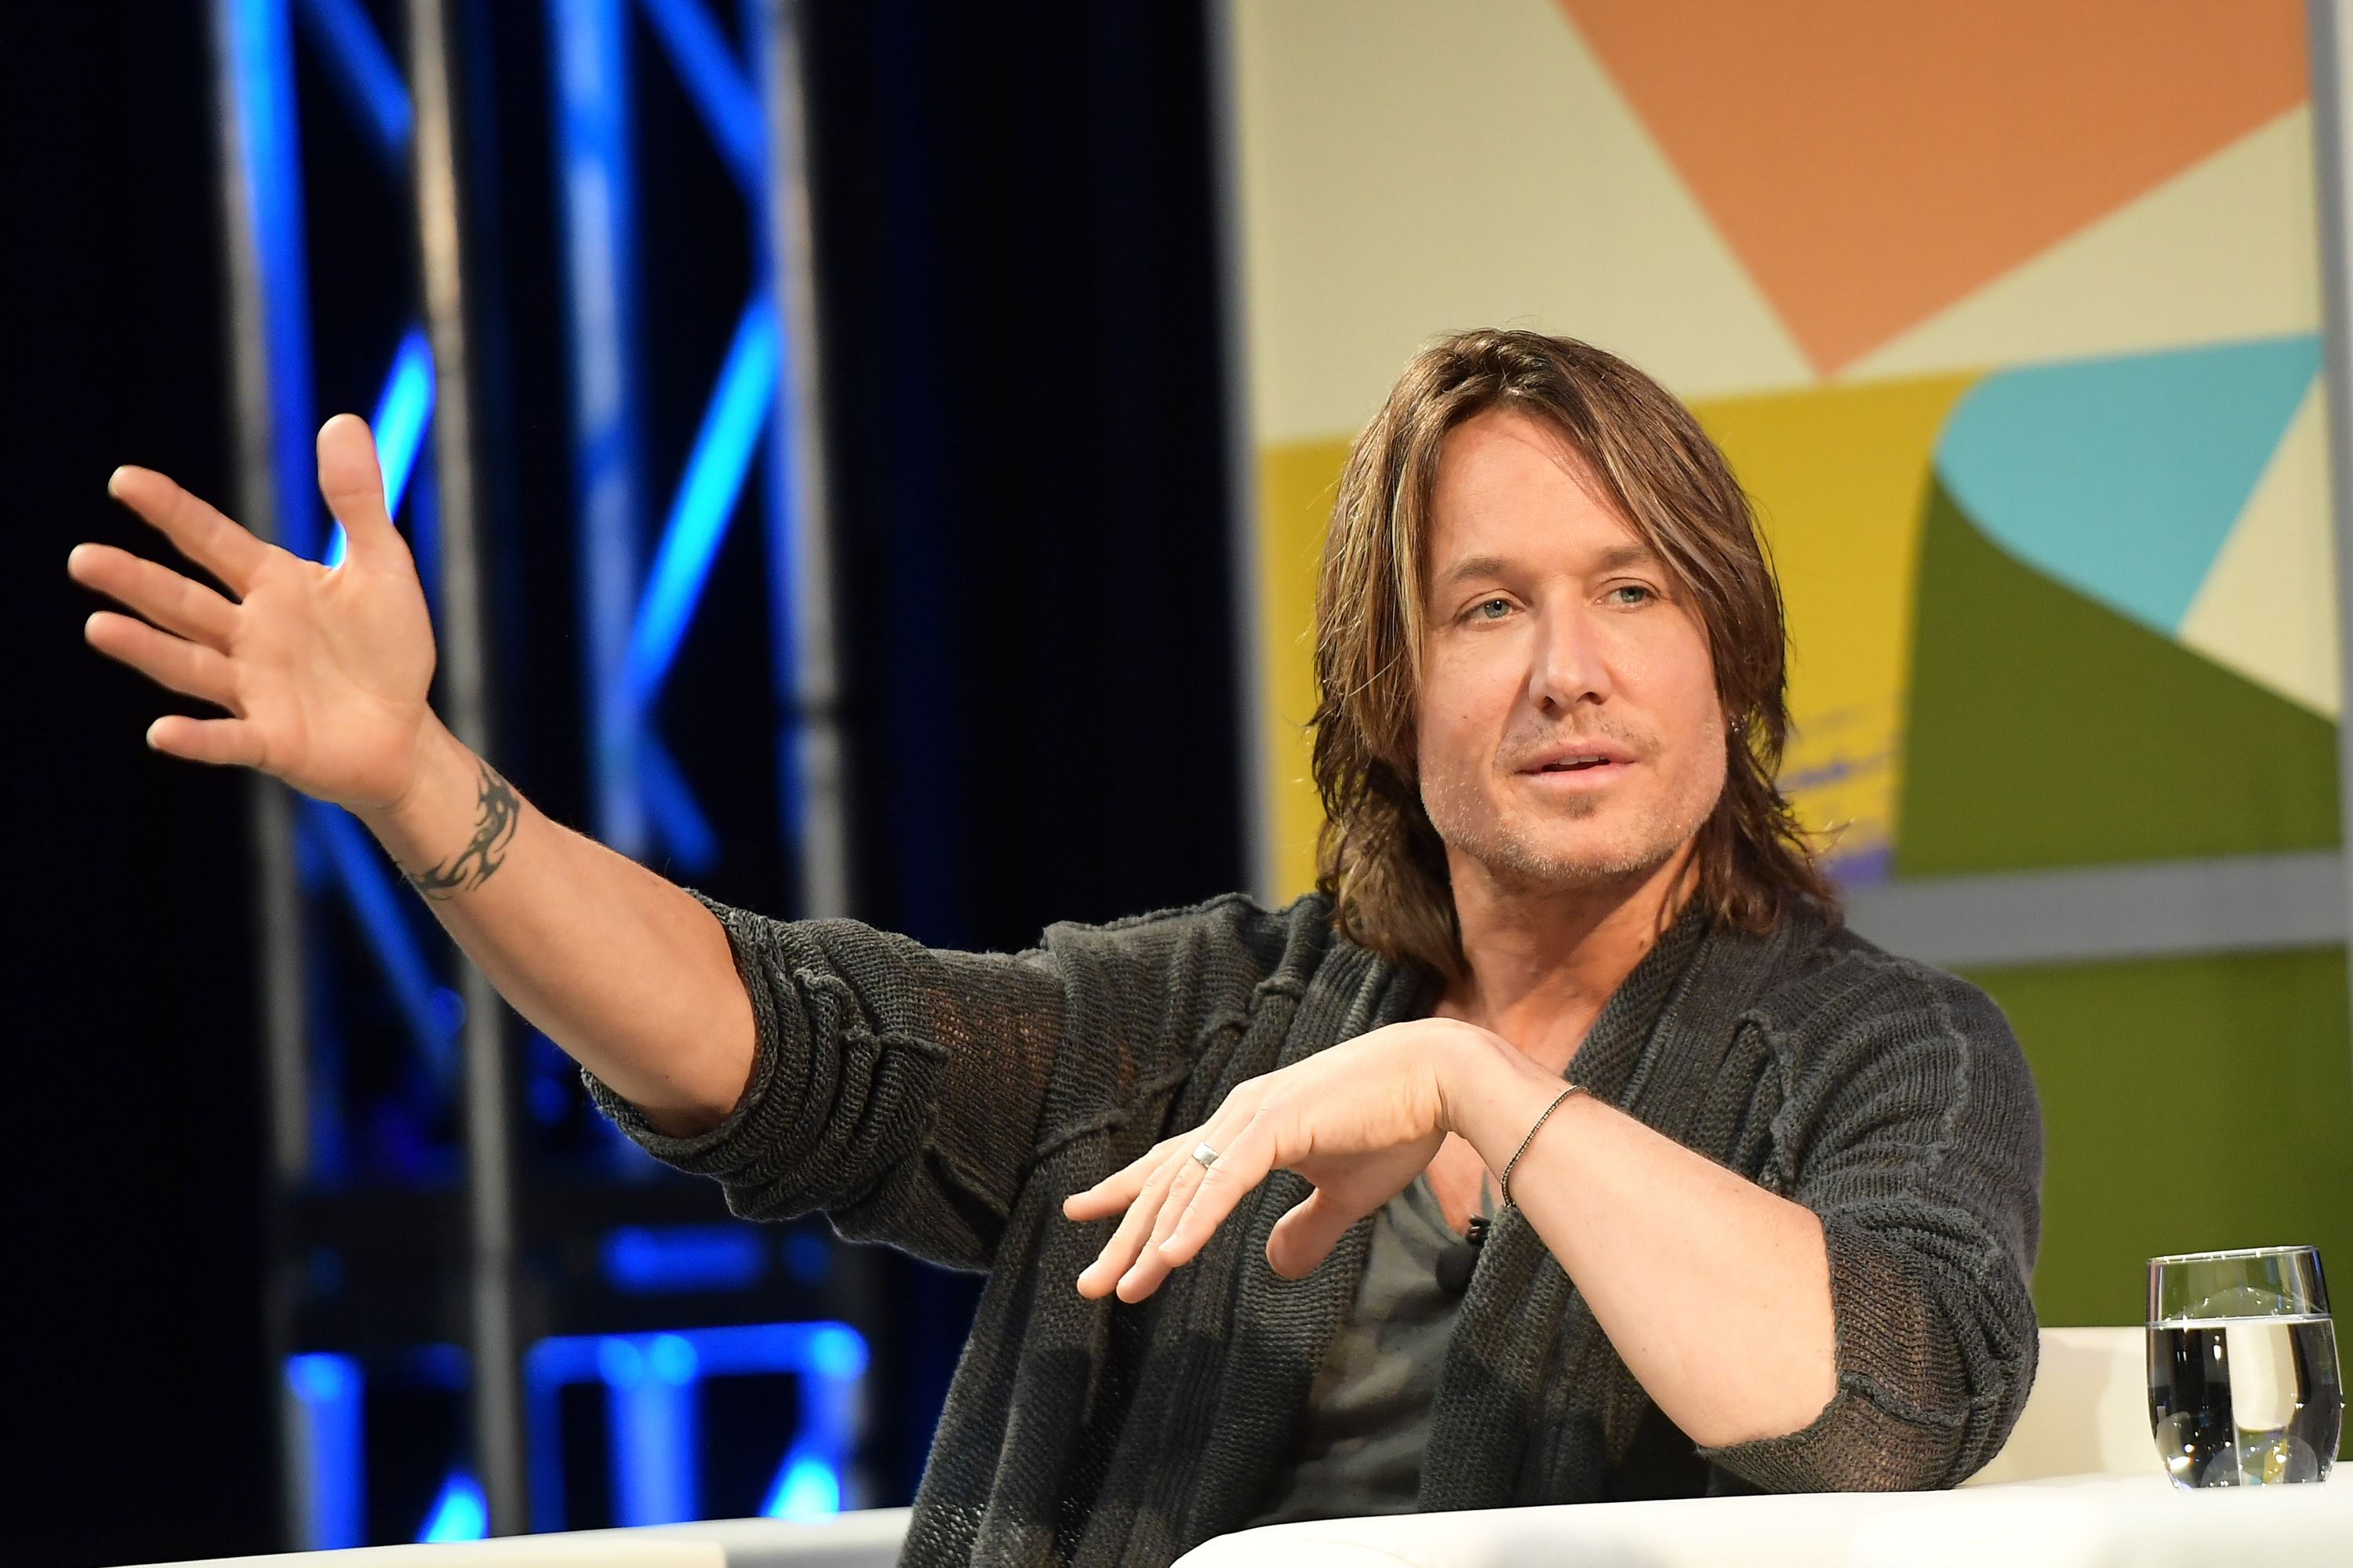 Keith Urban at A Conversation with Keith Urban 2018 SXSW Conference and Festivals at Austin Convention Center on March 16, 2018 | Photo: Getty Images